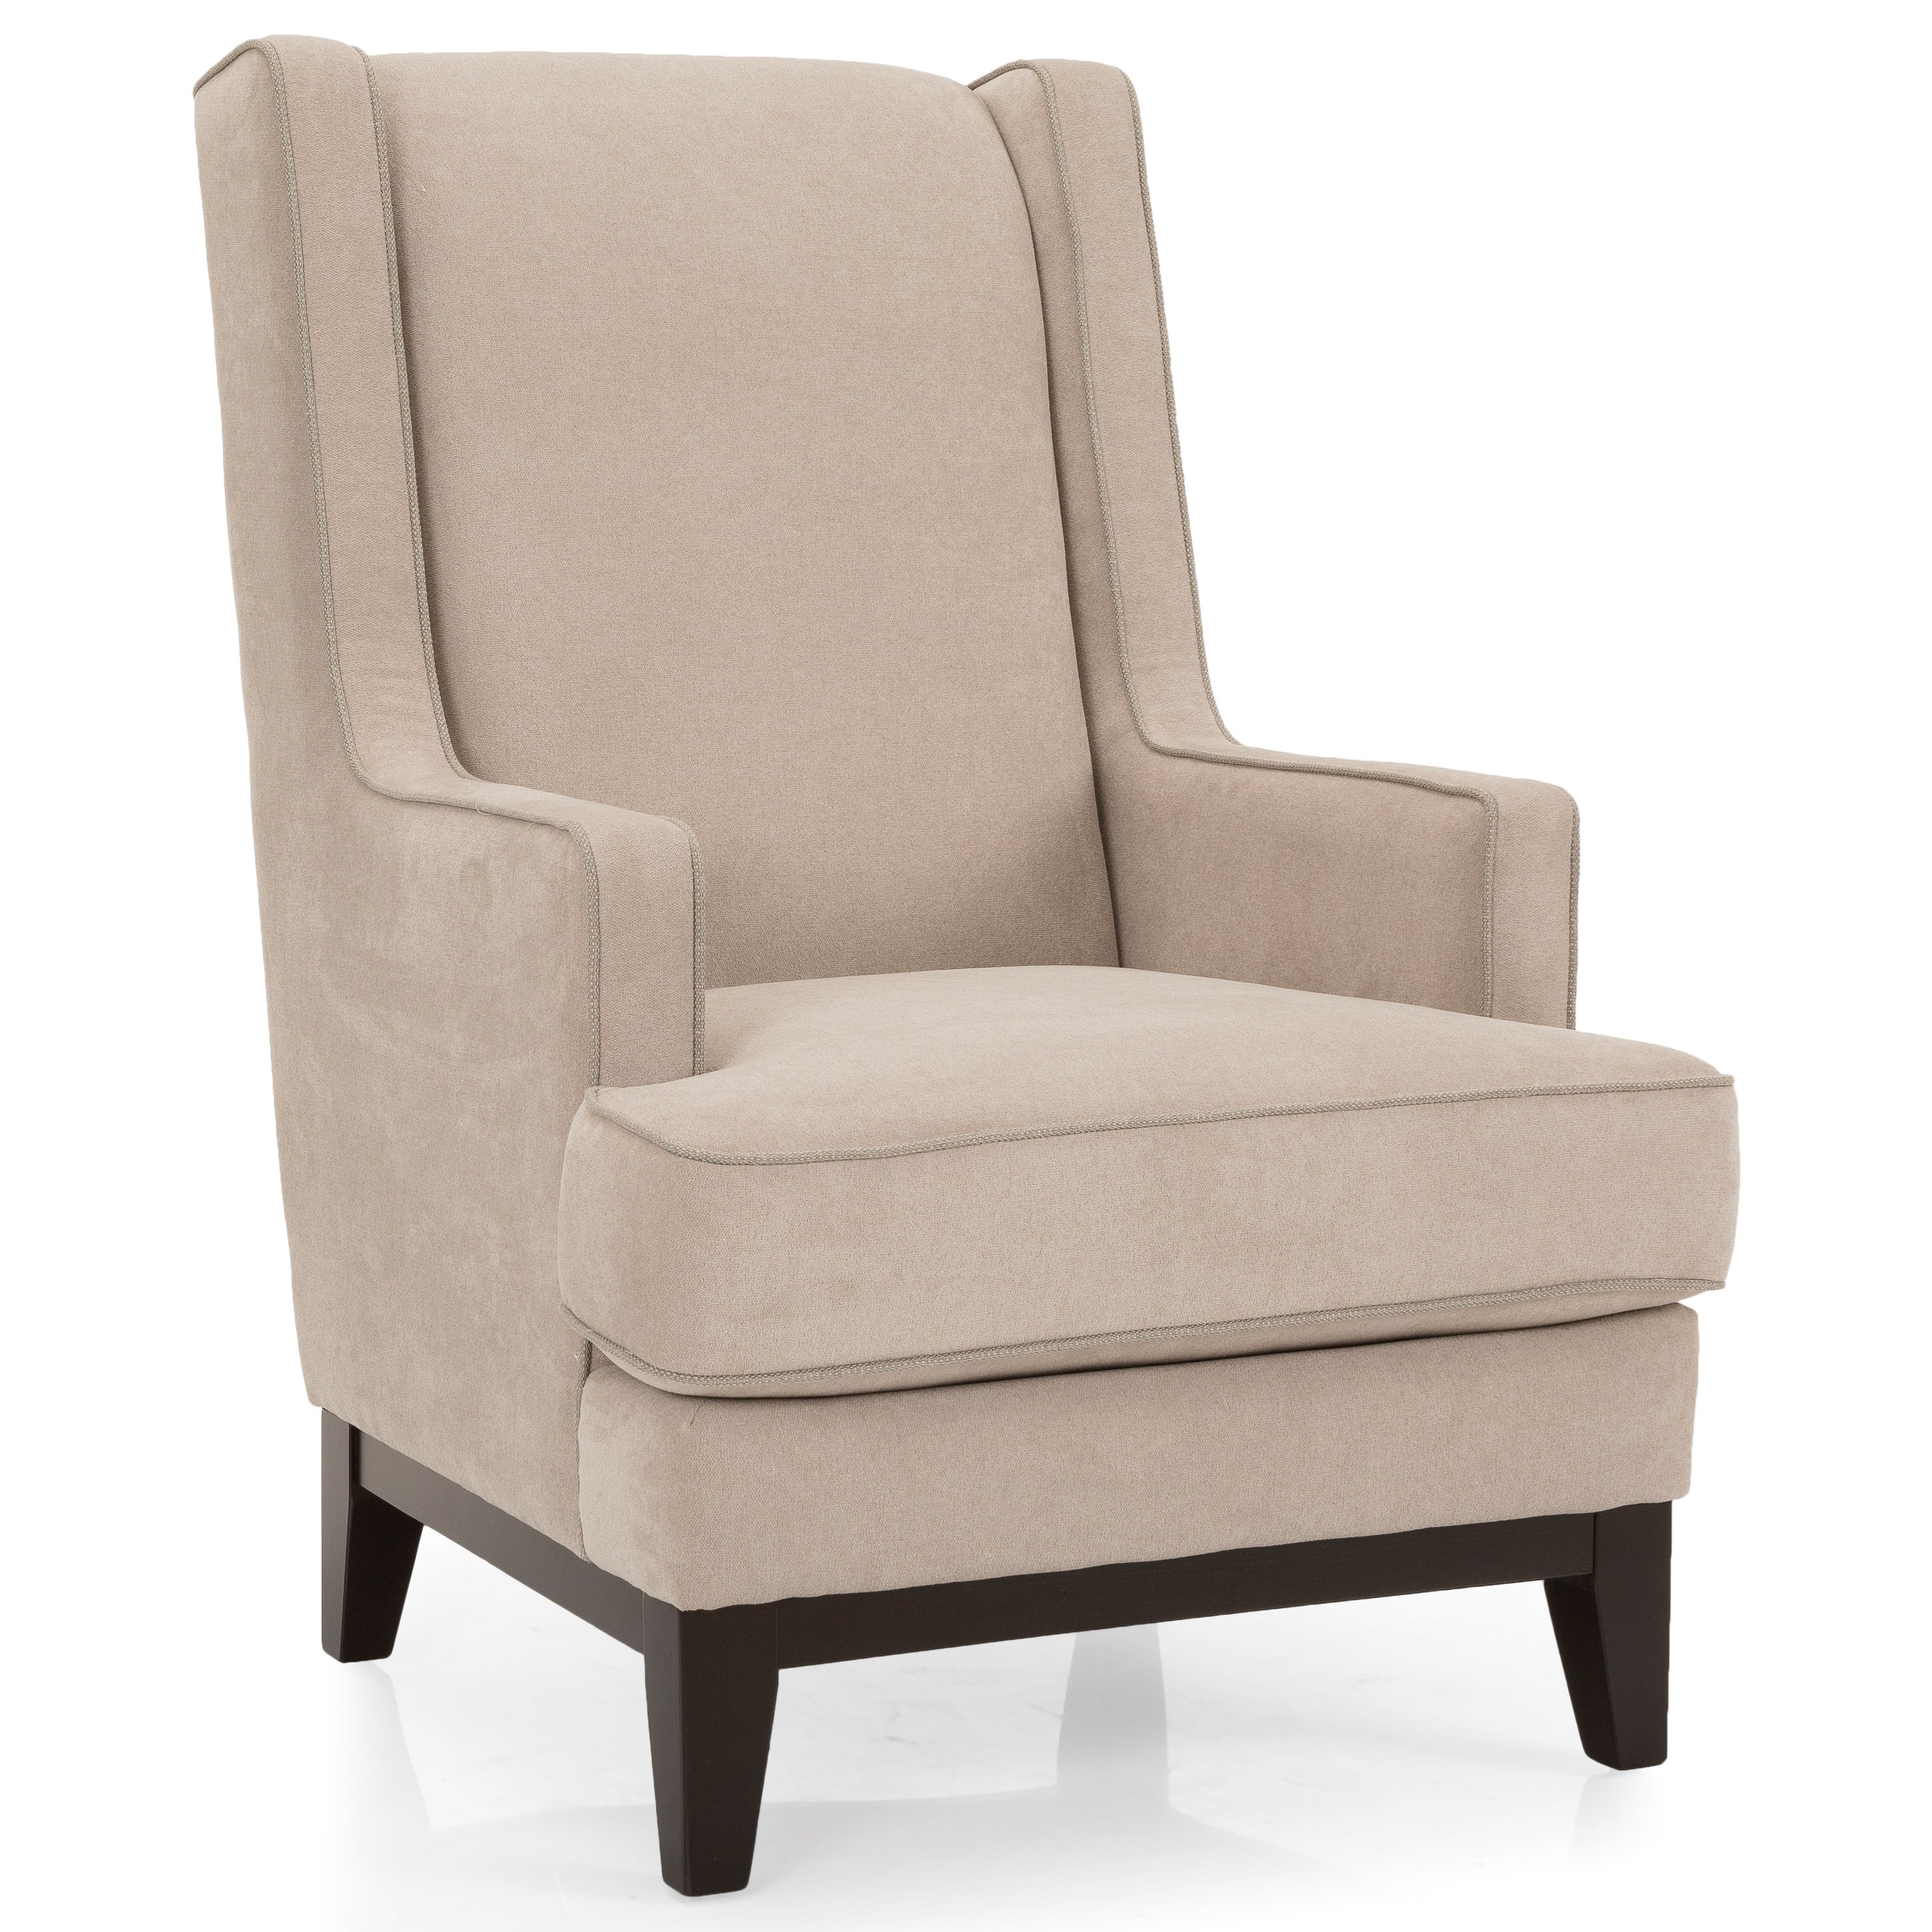 Decor-Rest Flynn by S&C Wing Chair - Item Number: 7718 Chair-Abriana Sand w Contrast